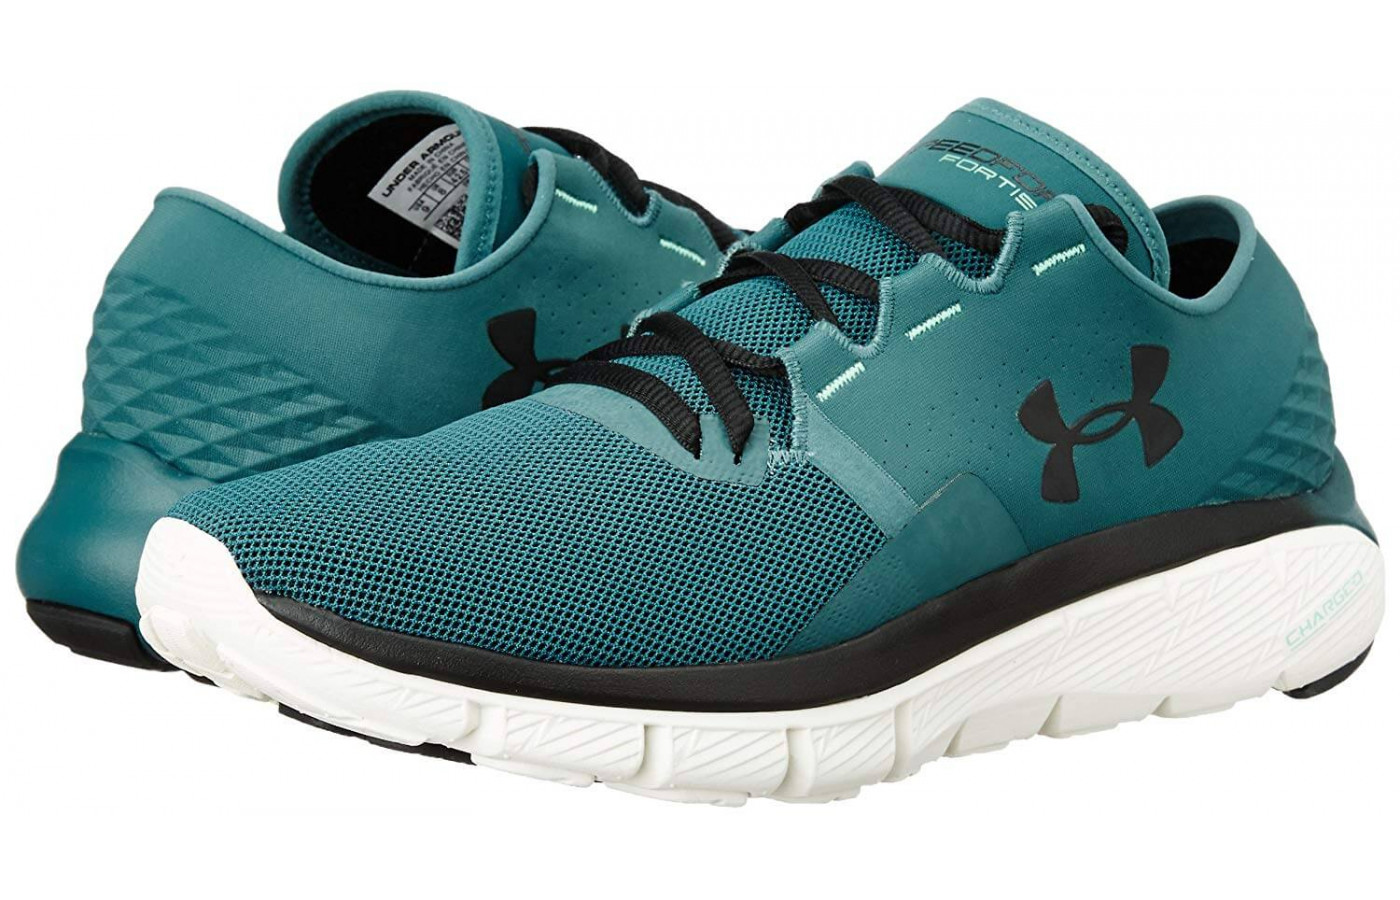 Under Armour Speedform Fortis 2.1